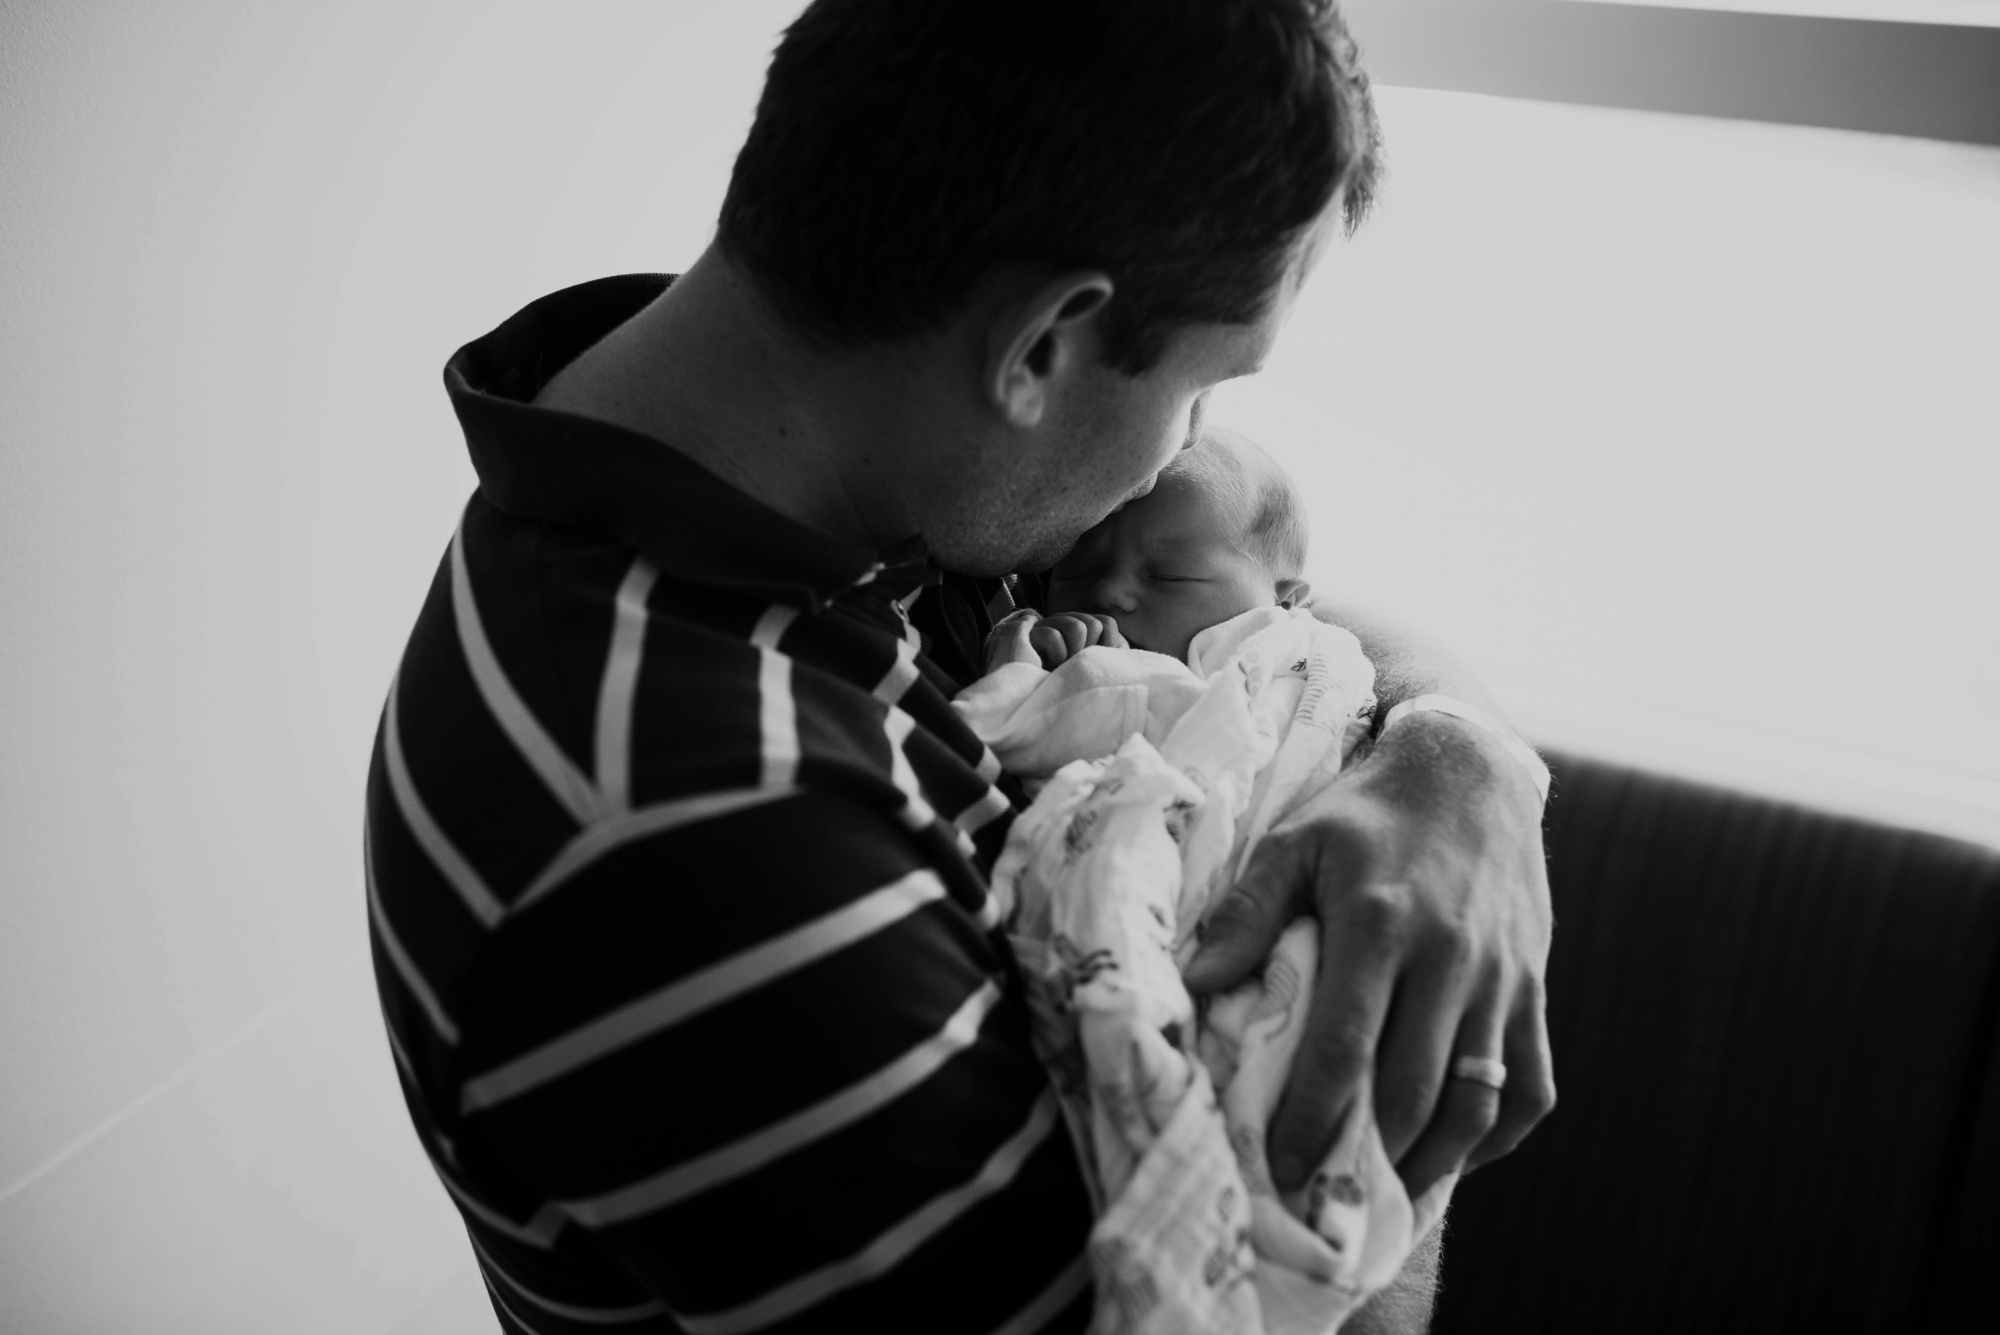 fresh-48-newborn-baby-hospital-photographer-lauren-grayson-akron-cleveland-ohio-emma_0050.jpg